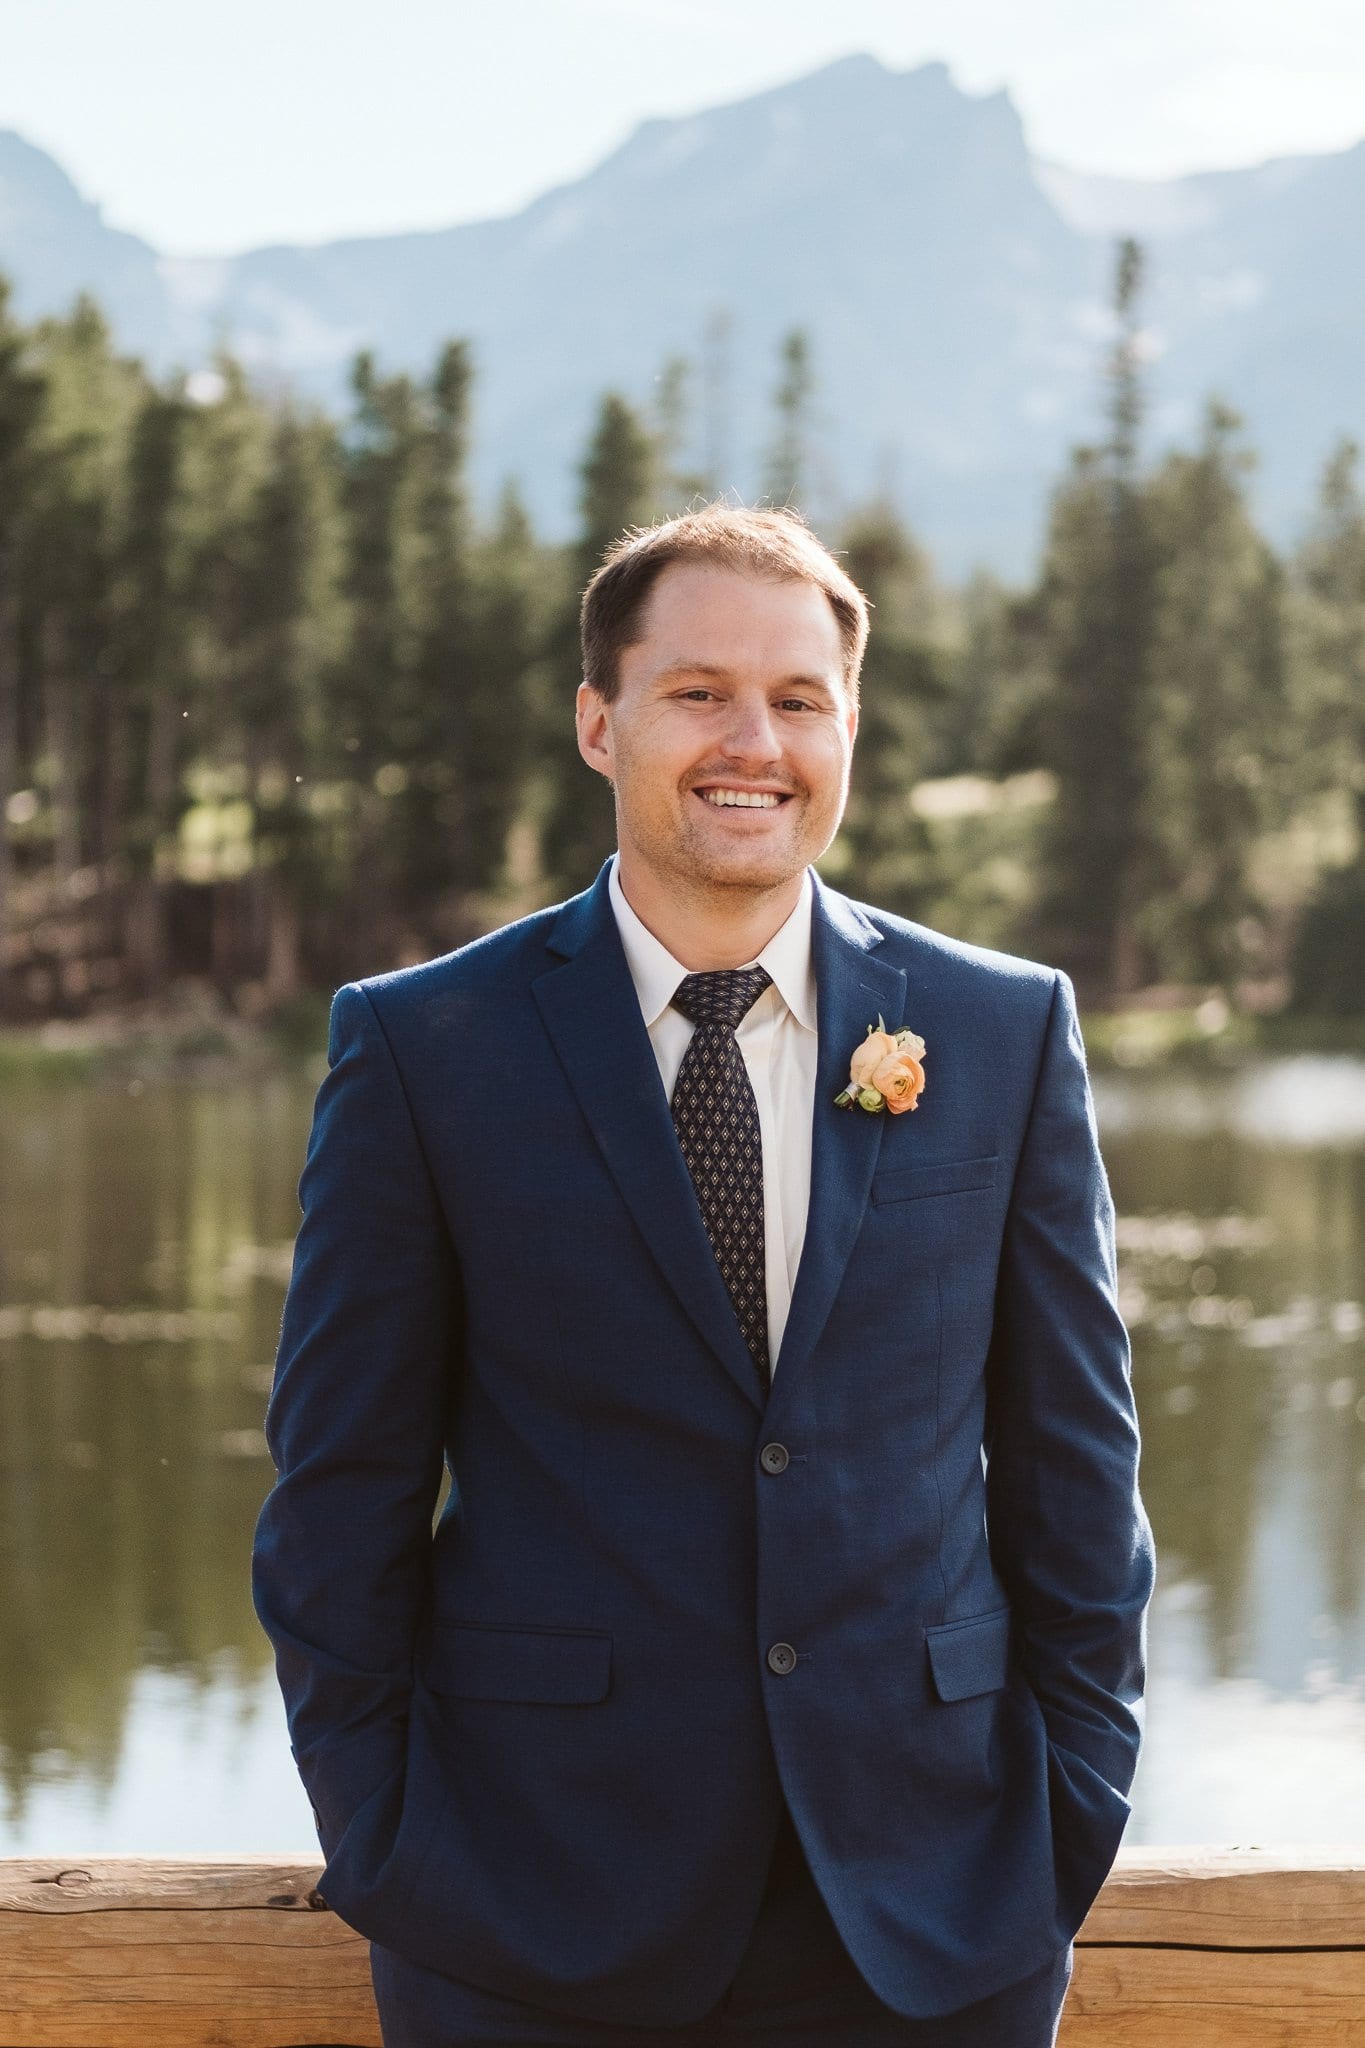 Groom in dark blue suit with orange floral boutonniere at Rocky Mountain National Park elopement at Sprague Lake